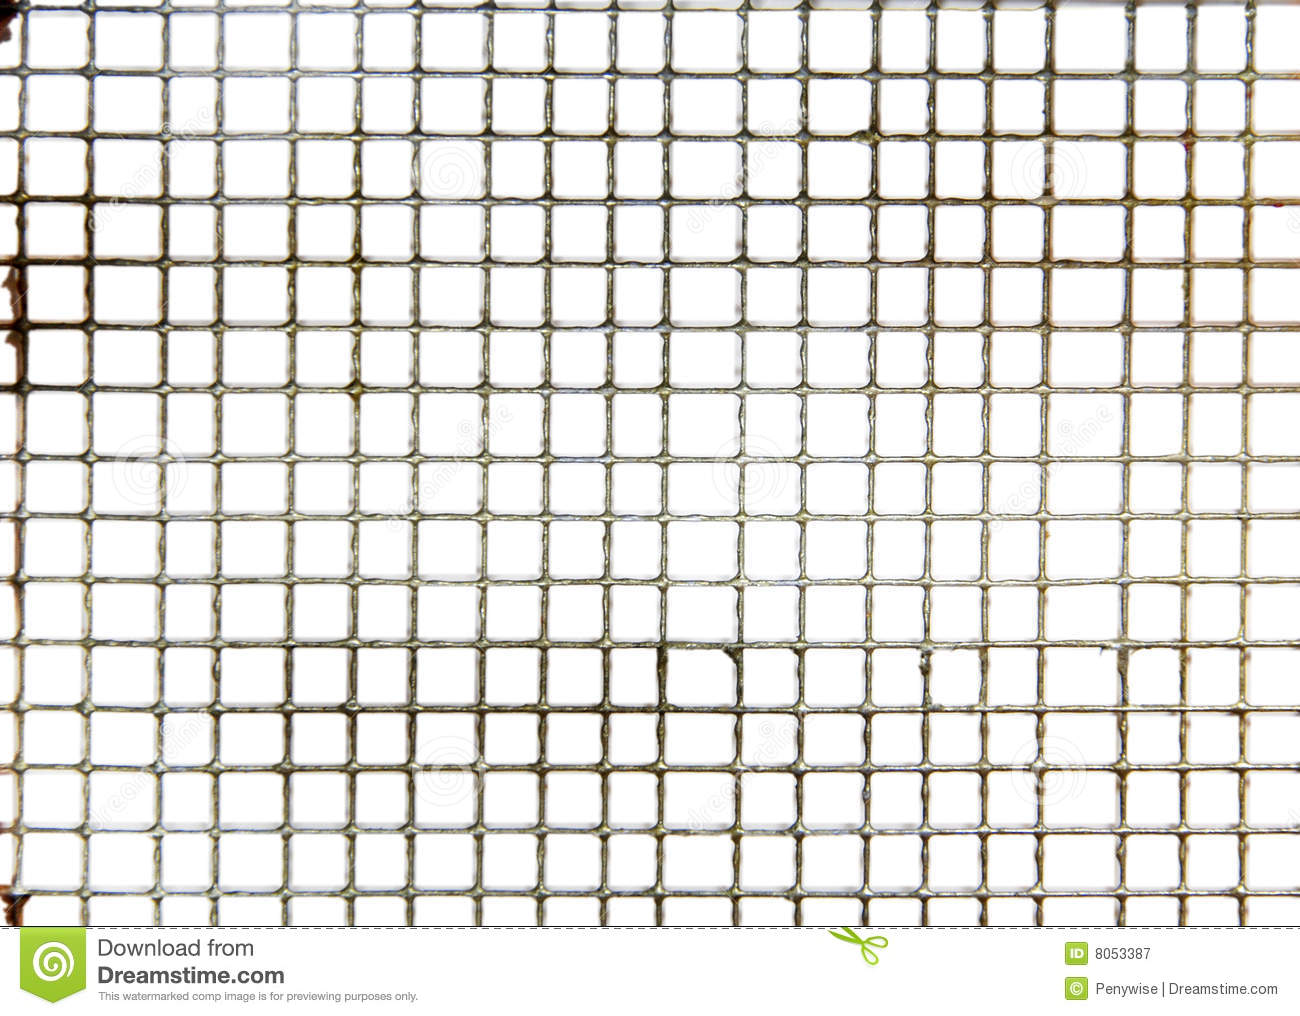 Small wire mesh texture stock image. Image of lines, background ...